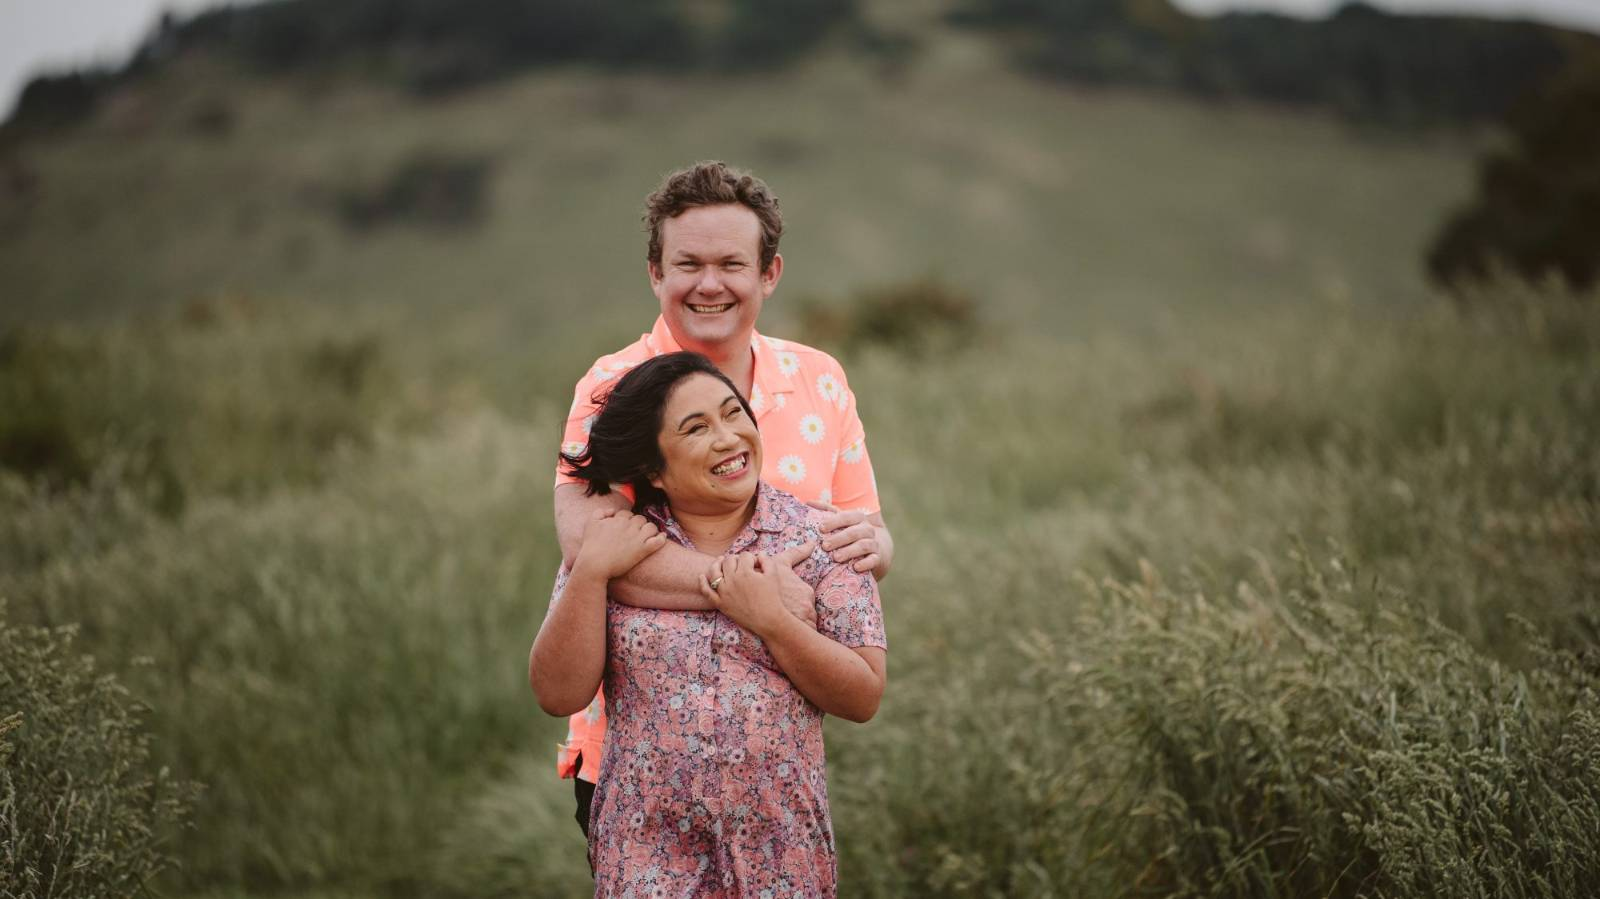 Slow burn: This couple fell in love through letters